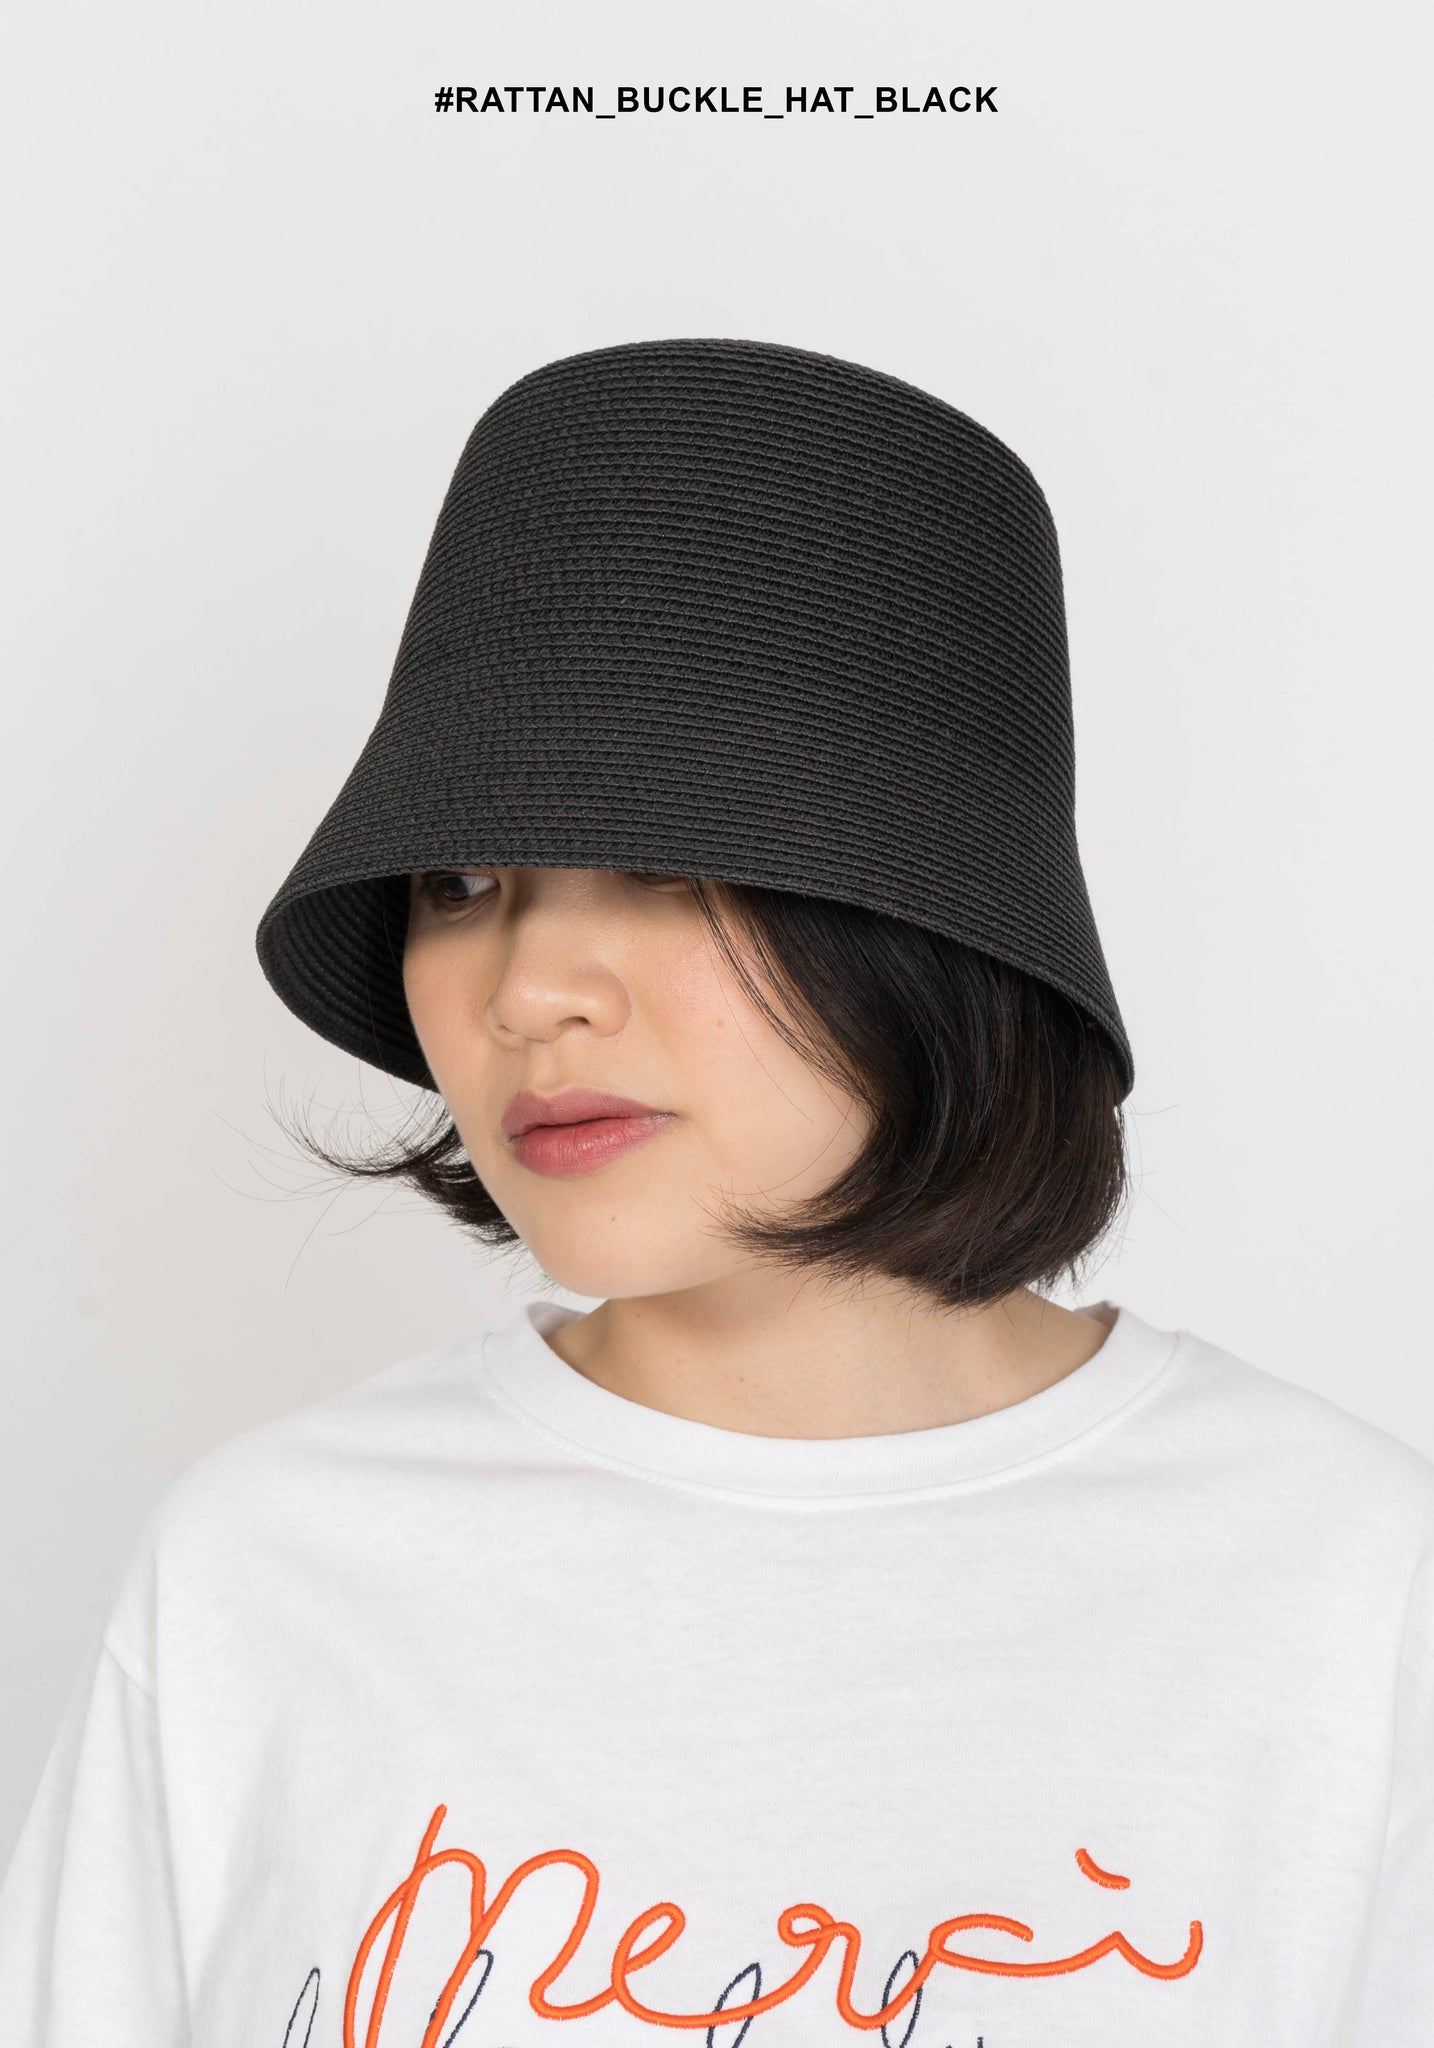 Rattan Buckle Hat Black - whoami